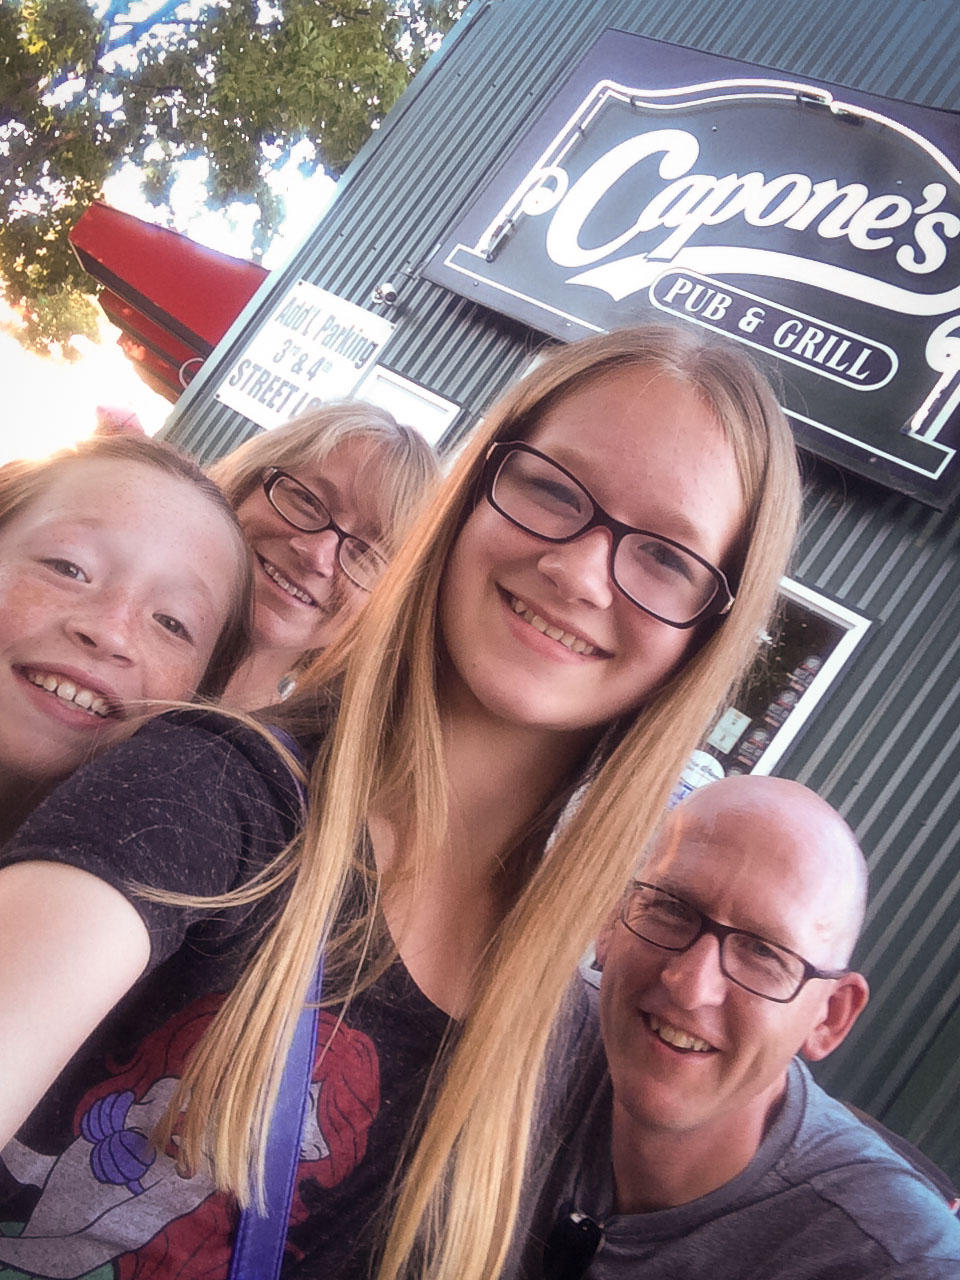 Capones = winner. And save the selfie stick comments :-)